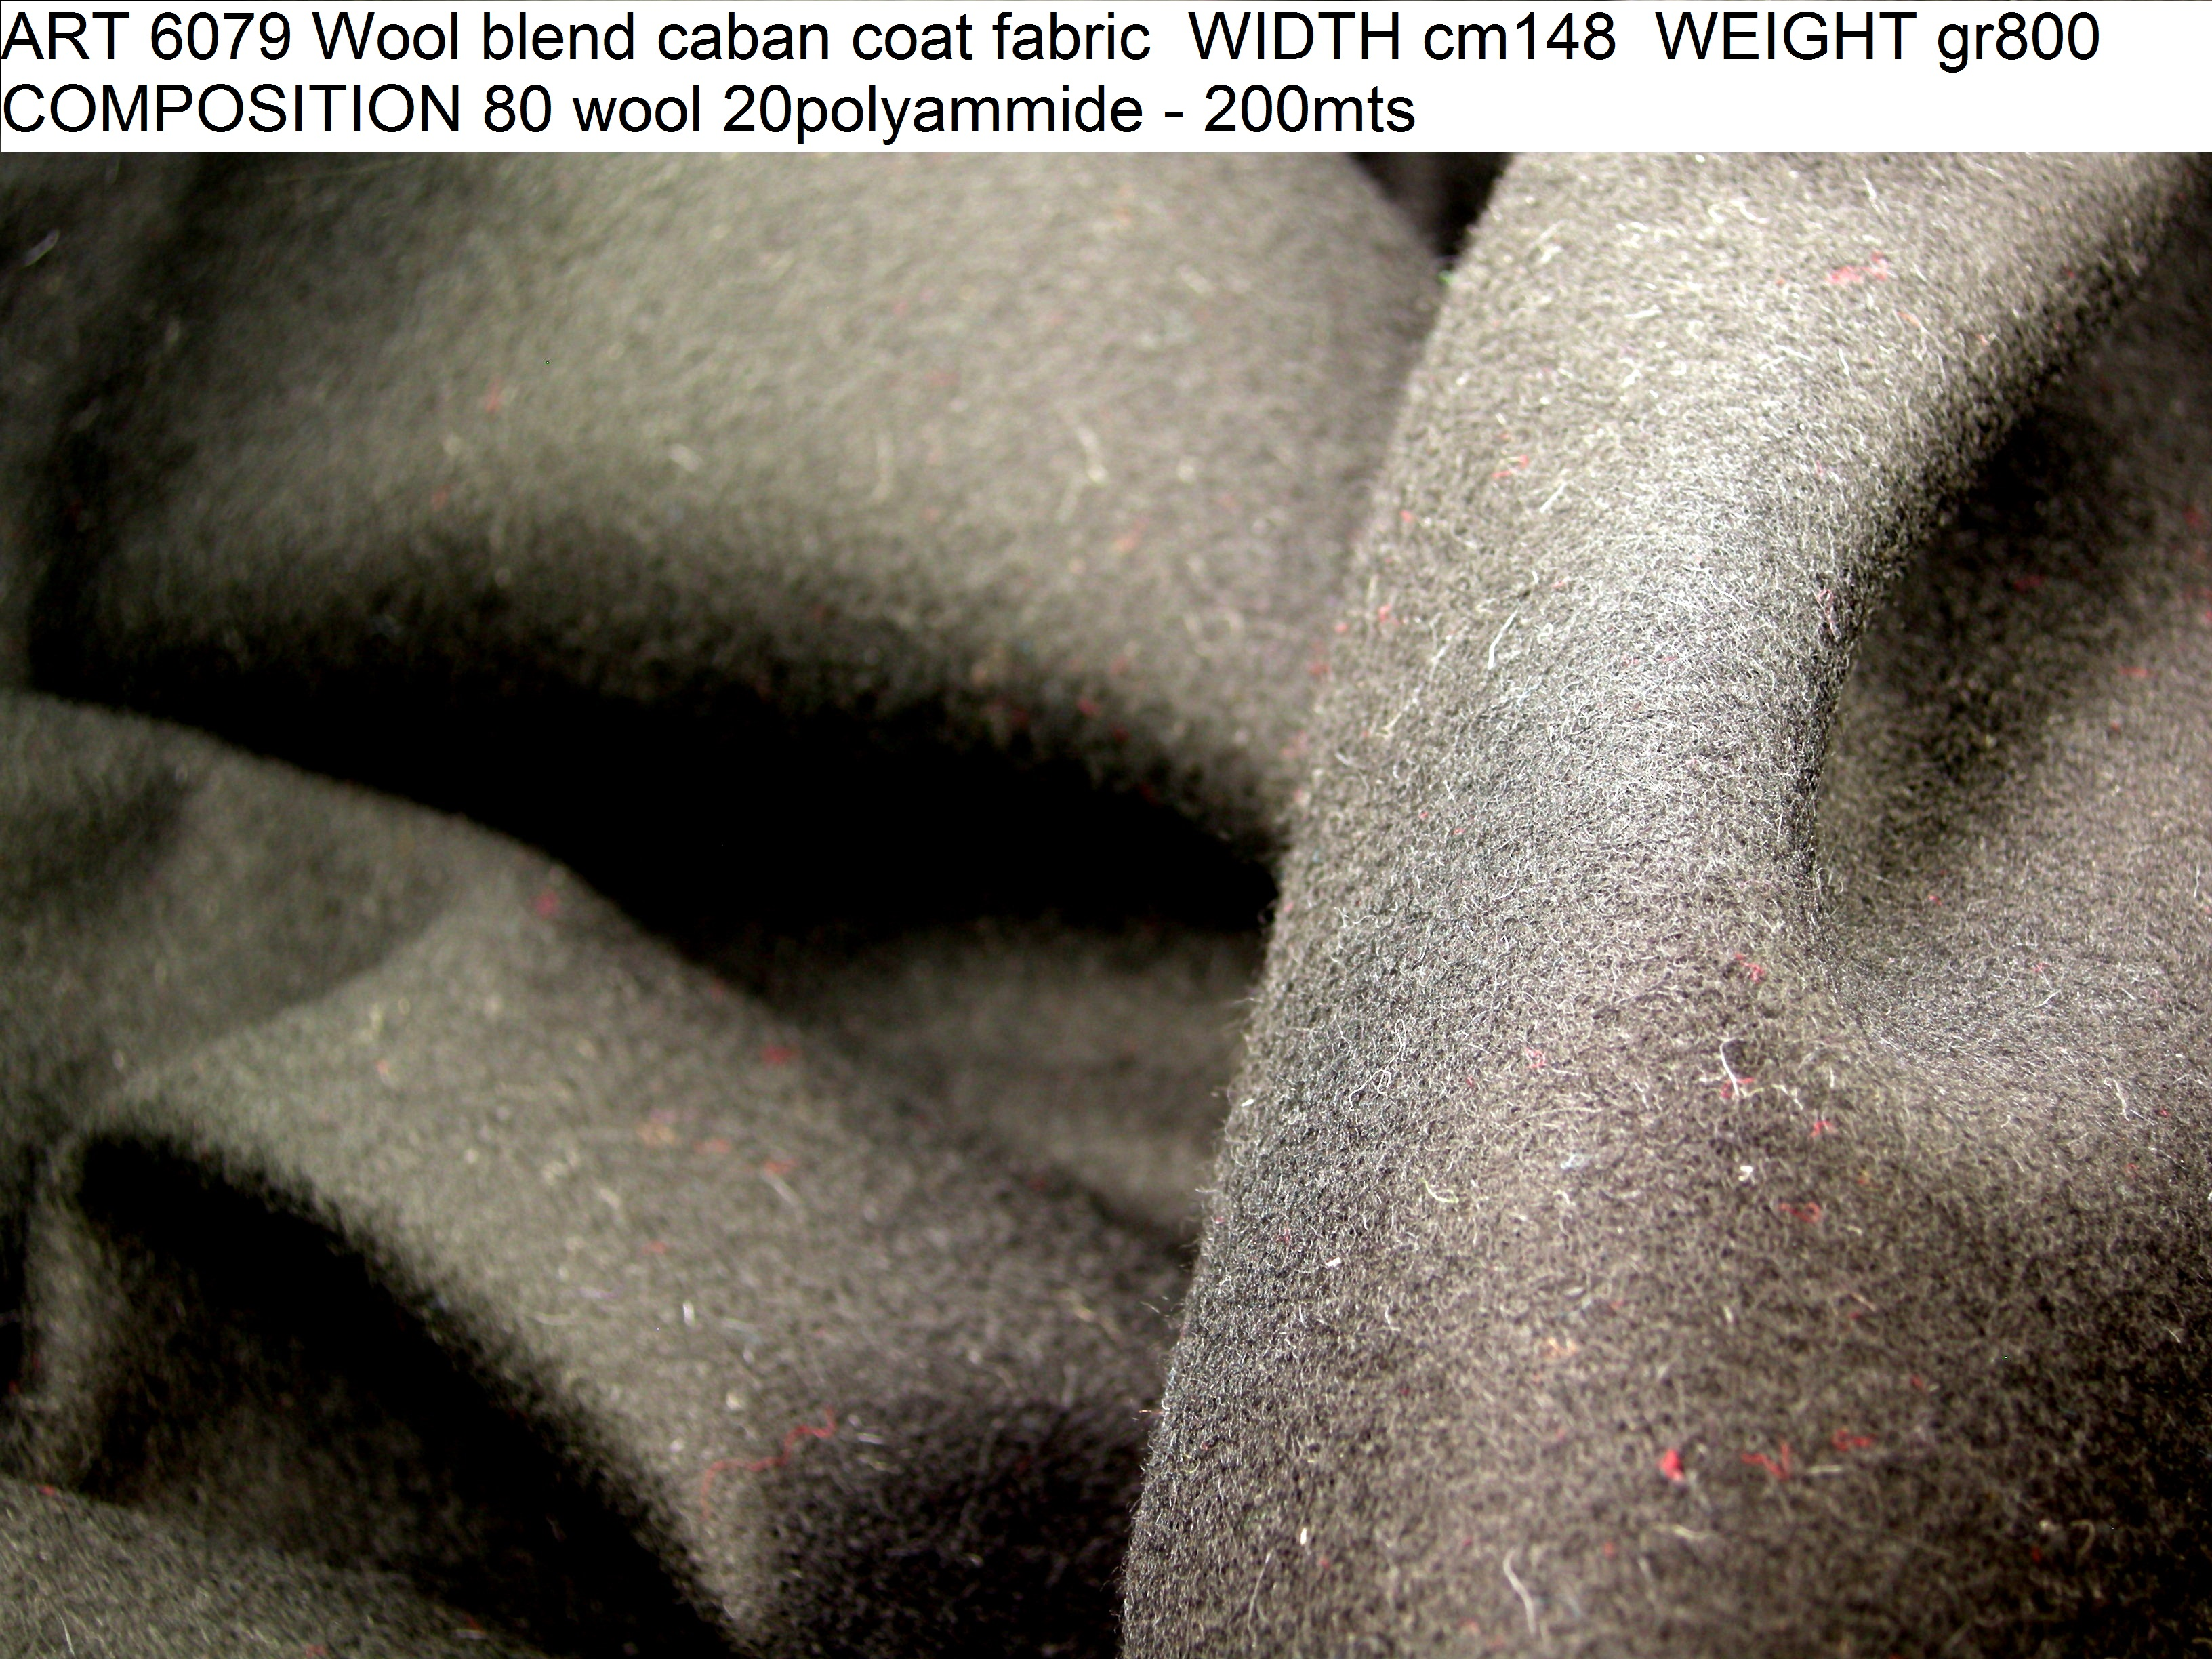 ART 6079 Wool blend caban coat fabric WIDTH cm148 WEIGHT gr800 COMPOSITION 80 wool 20polyammide - 200mts